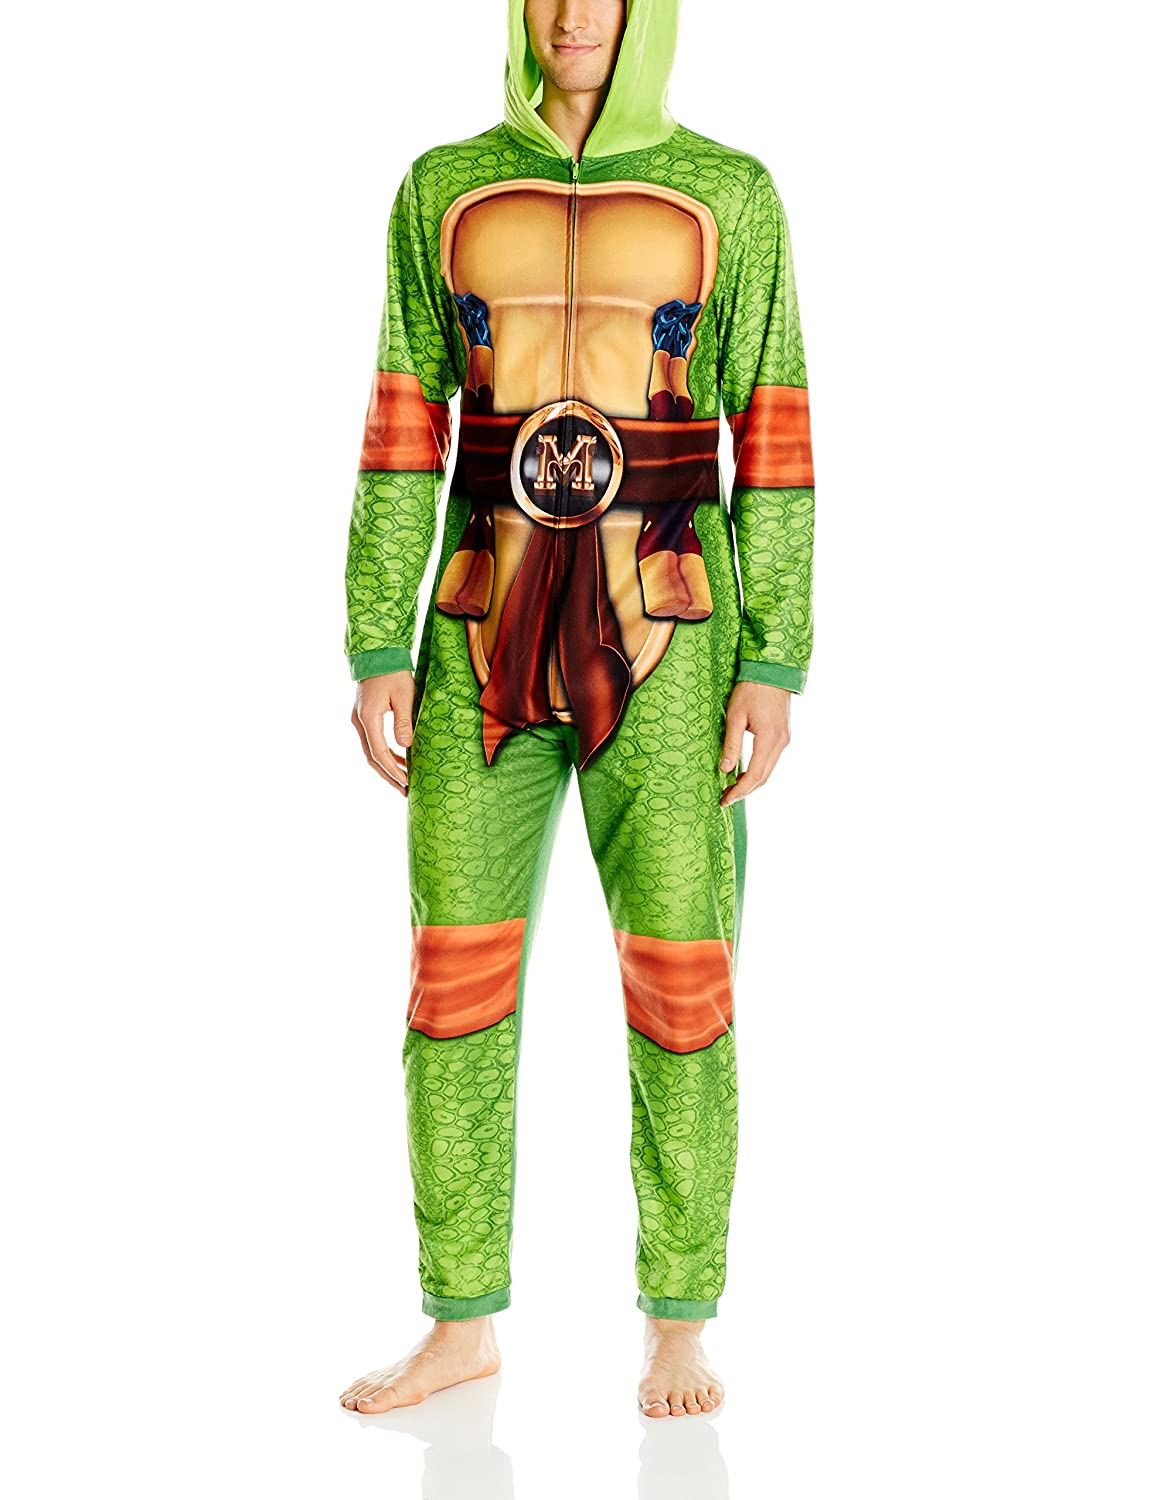 Nickelodeon Menu0027s Teenage Mutant Ninja Turtles Family Cosplay Union Suit Green Adult S at Amazon Menu0027s Clothing store  sc 1 st  Amazon.com & Nickelodeon Menu0027s Teenage Mutant Ninja Turtles Family Cosplay Union ...